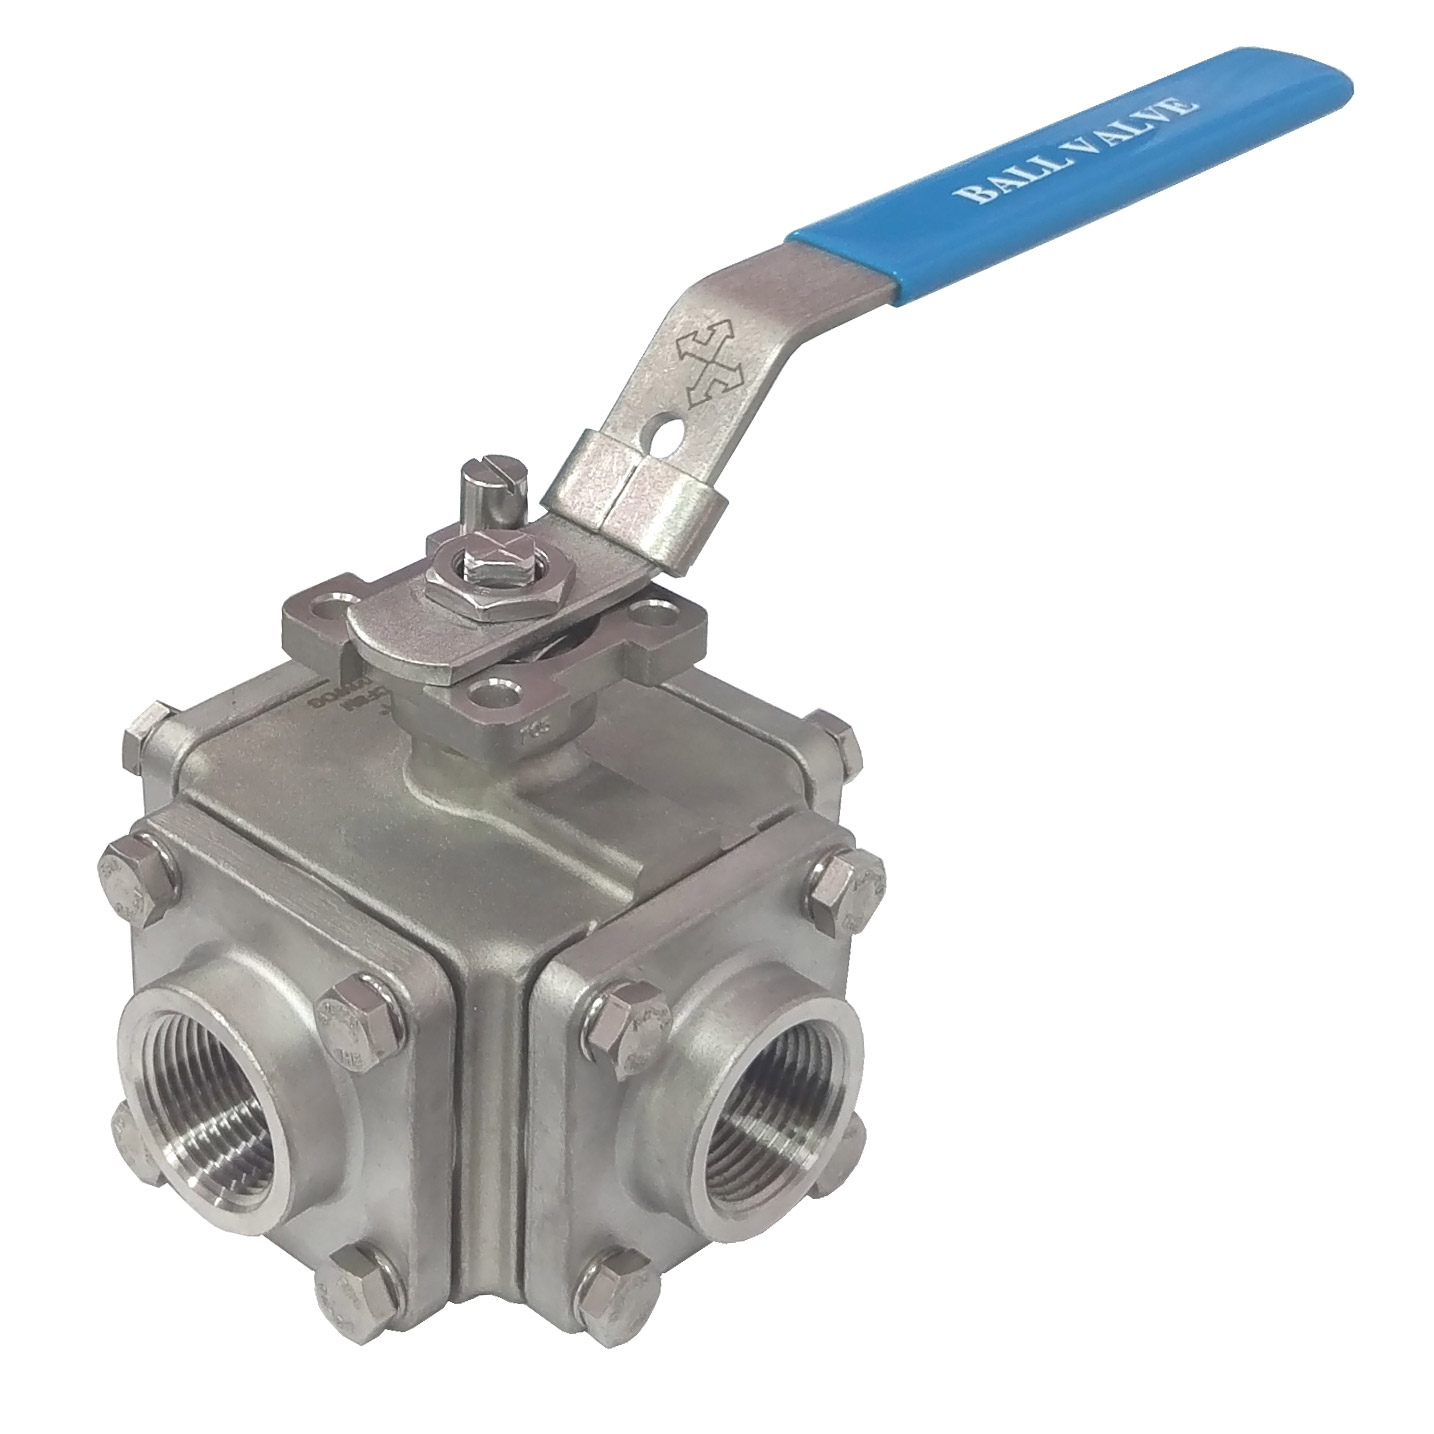 4-way ball valve, with ISO 5211 direct mounting pad